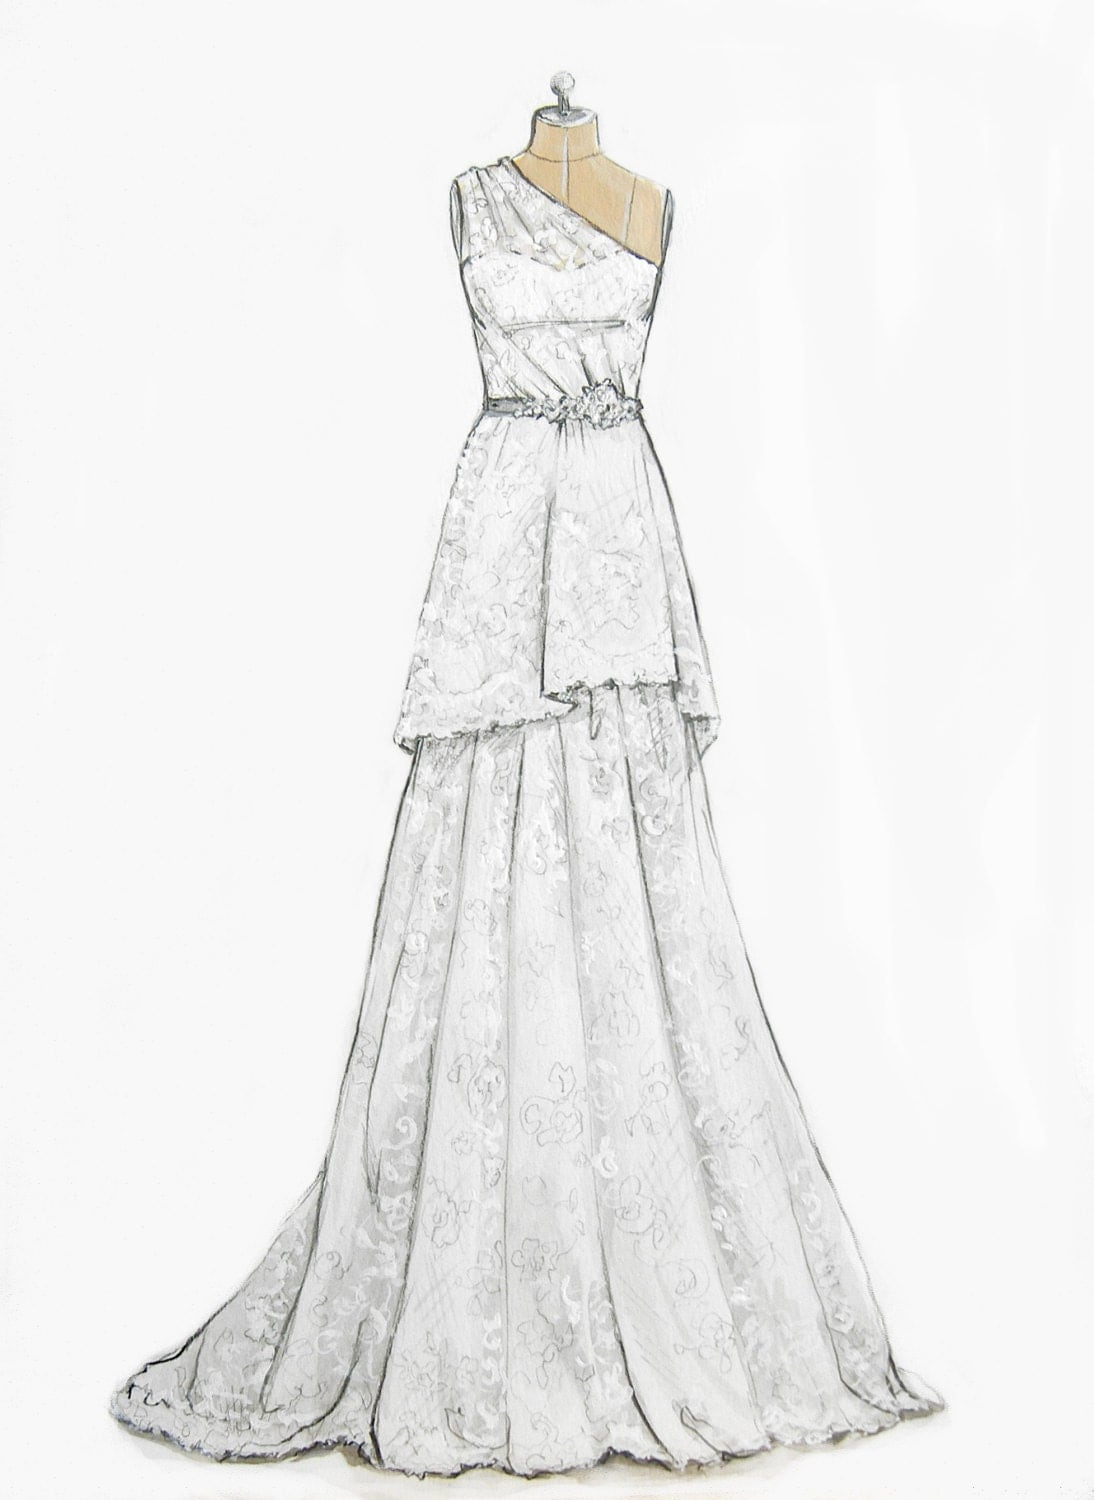 Custom Wedding Gown Dress Illustration On Dress Form